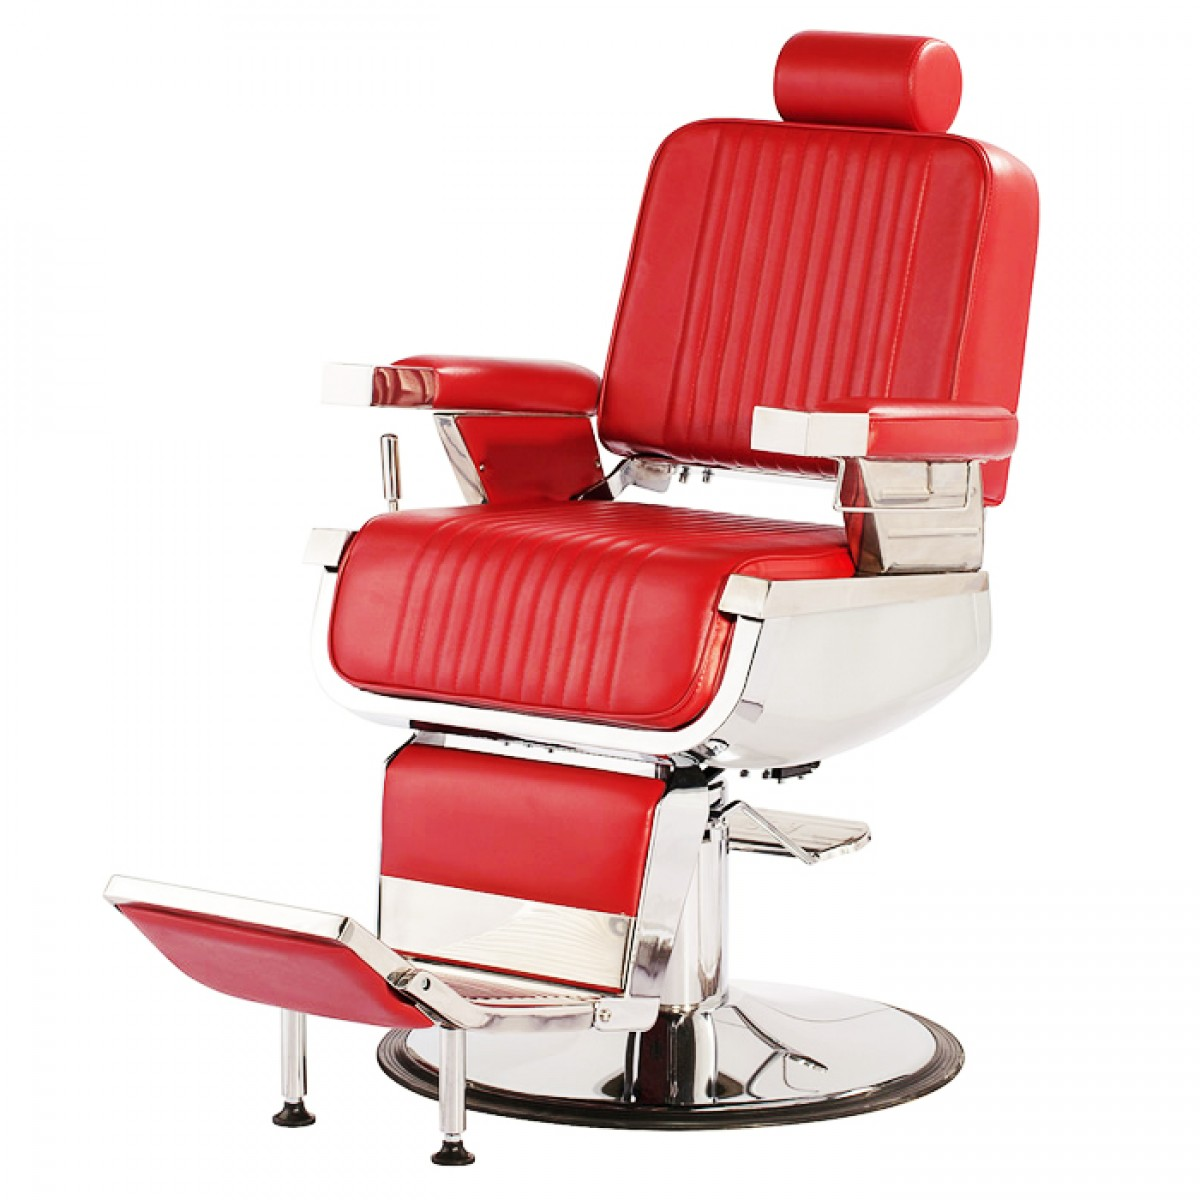 CONSTANTINE Barber Chair In Red  Red Barber Chairs